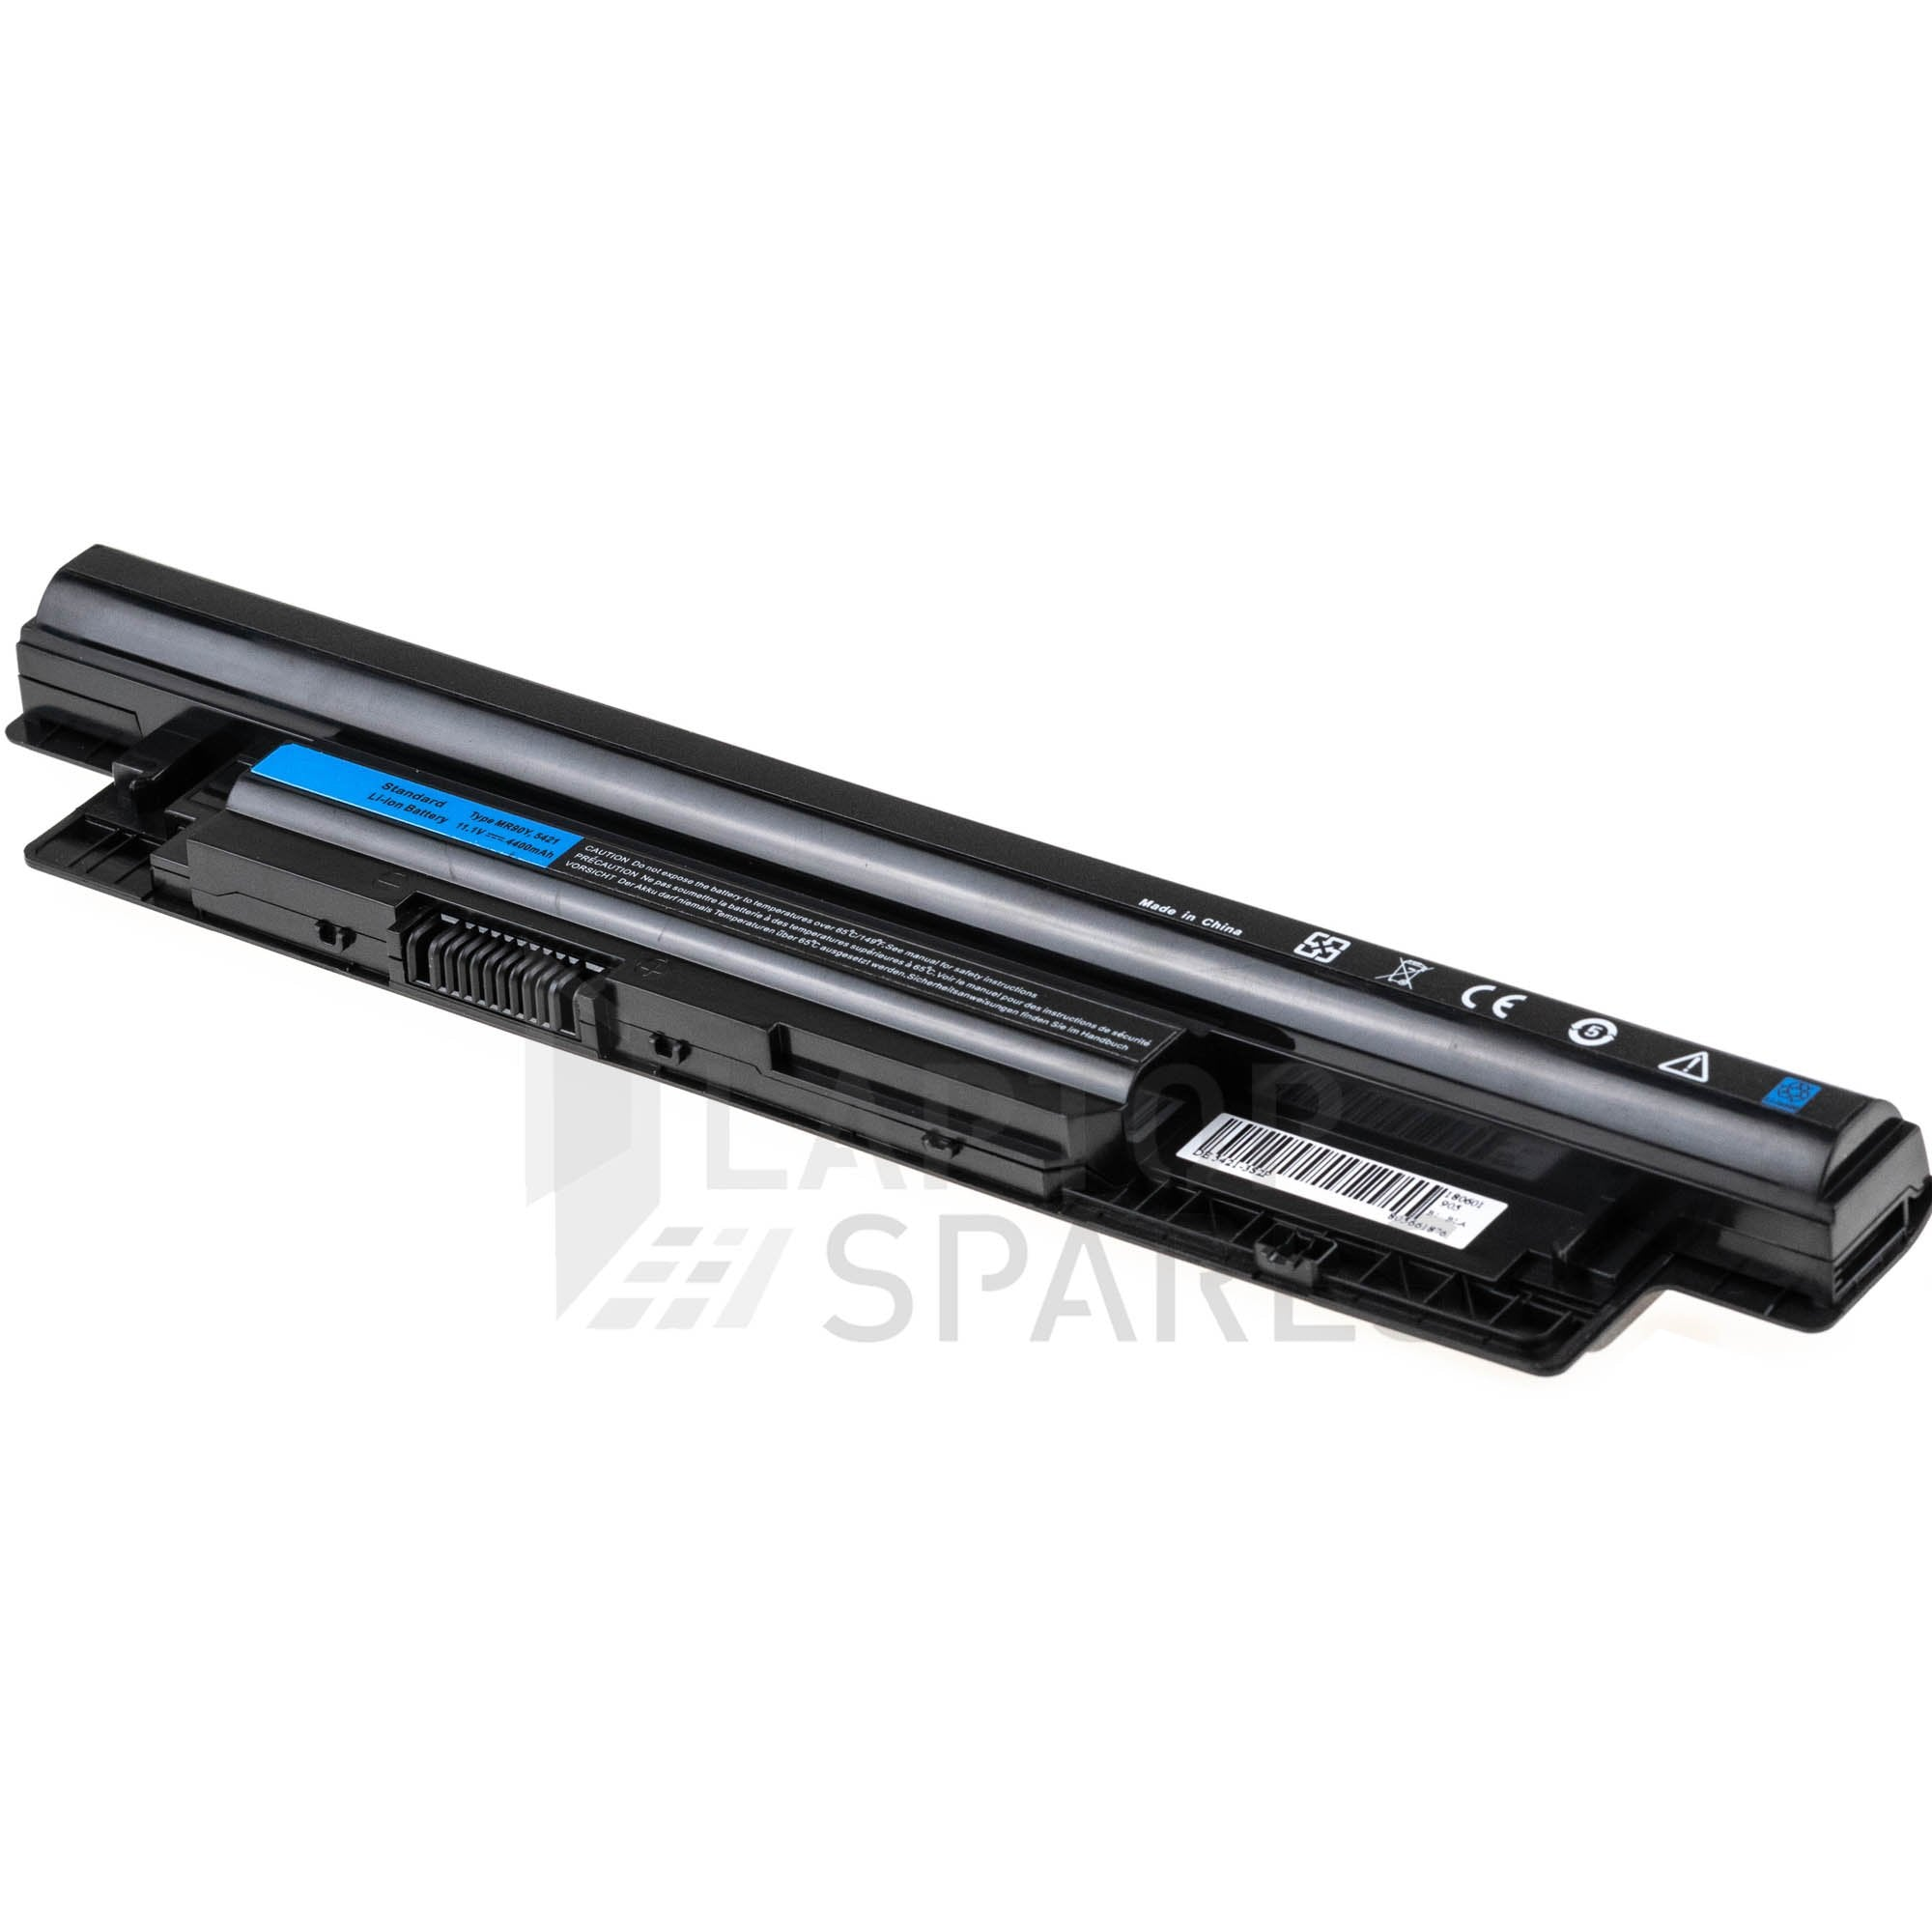 Dell Inspiron 15R N5521 N5537 4400mAh 6 Cell Battery